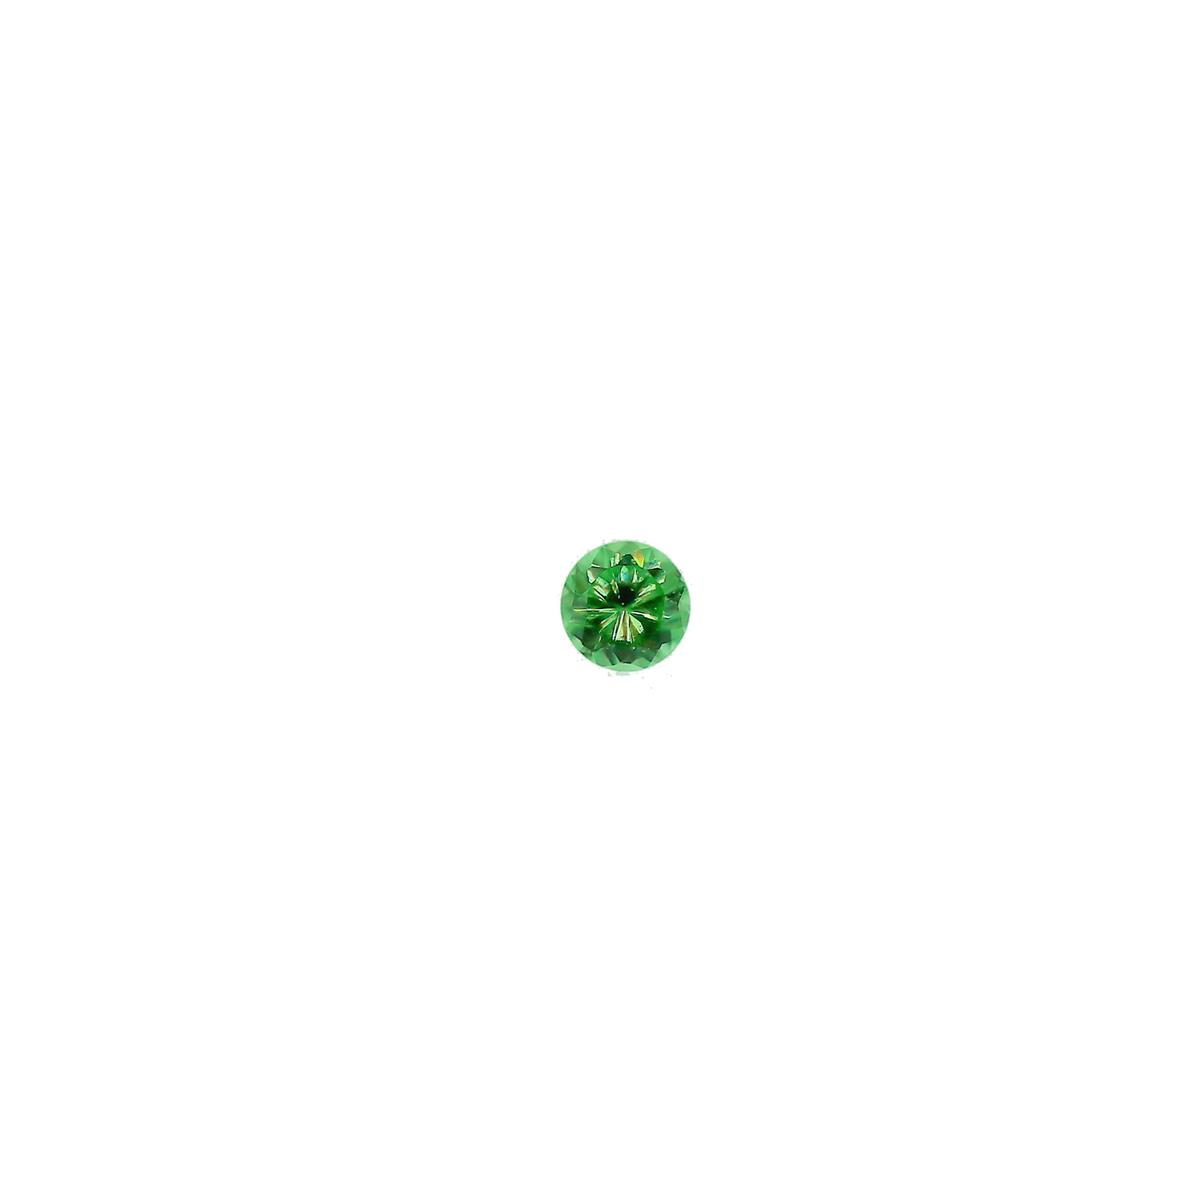 Synthetic Emerald 1.75mm Round